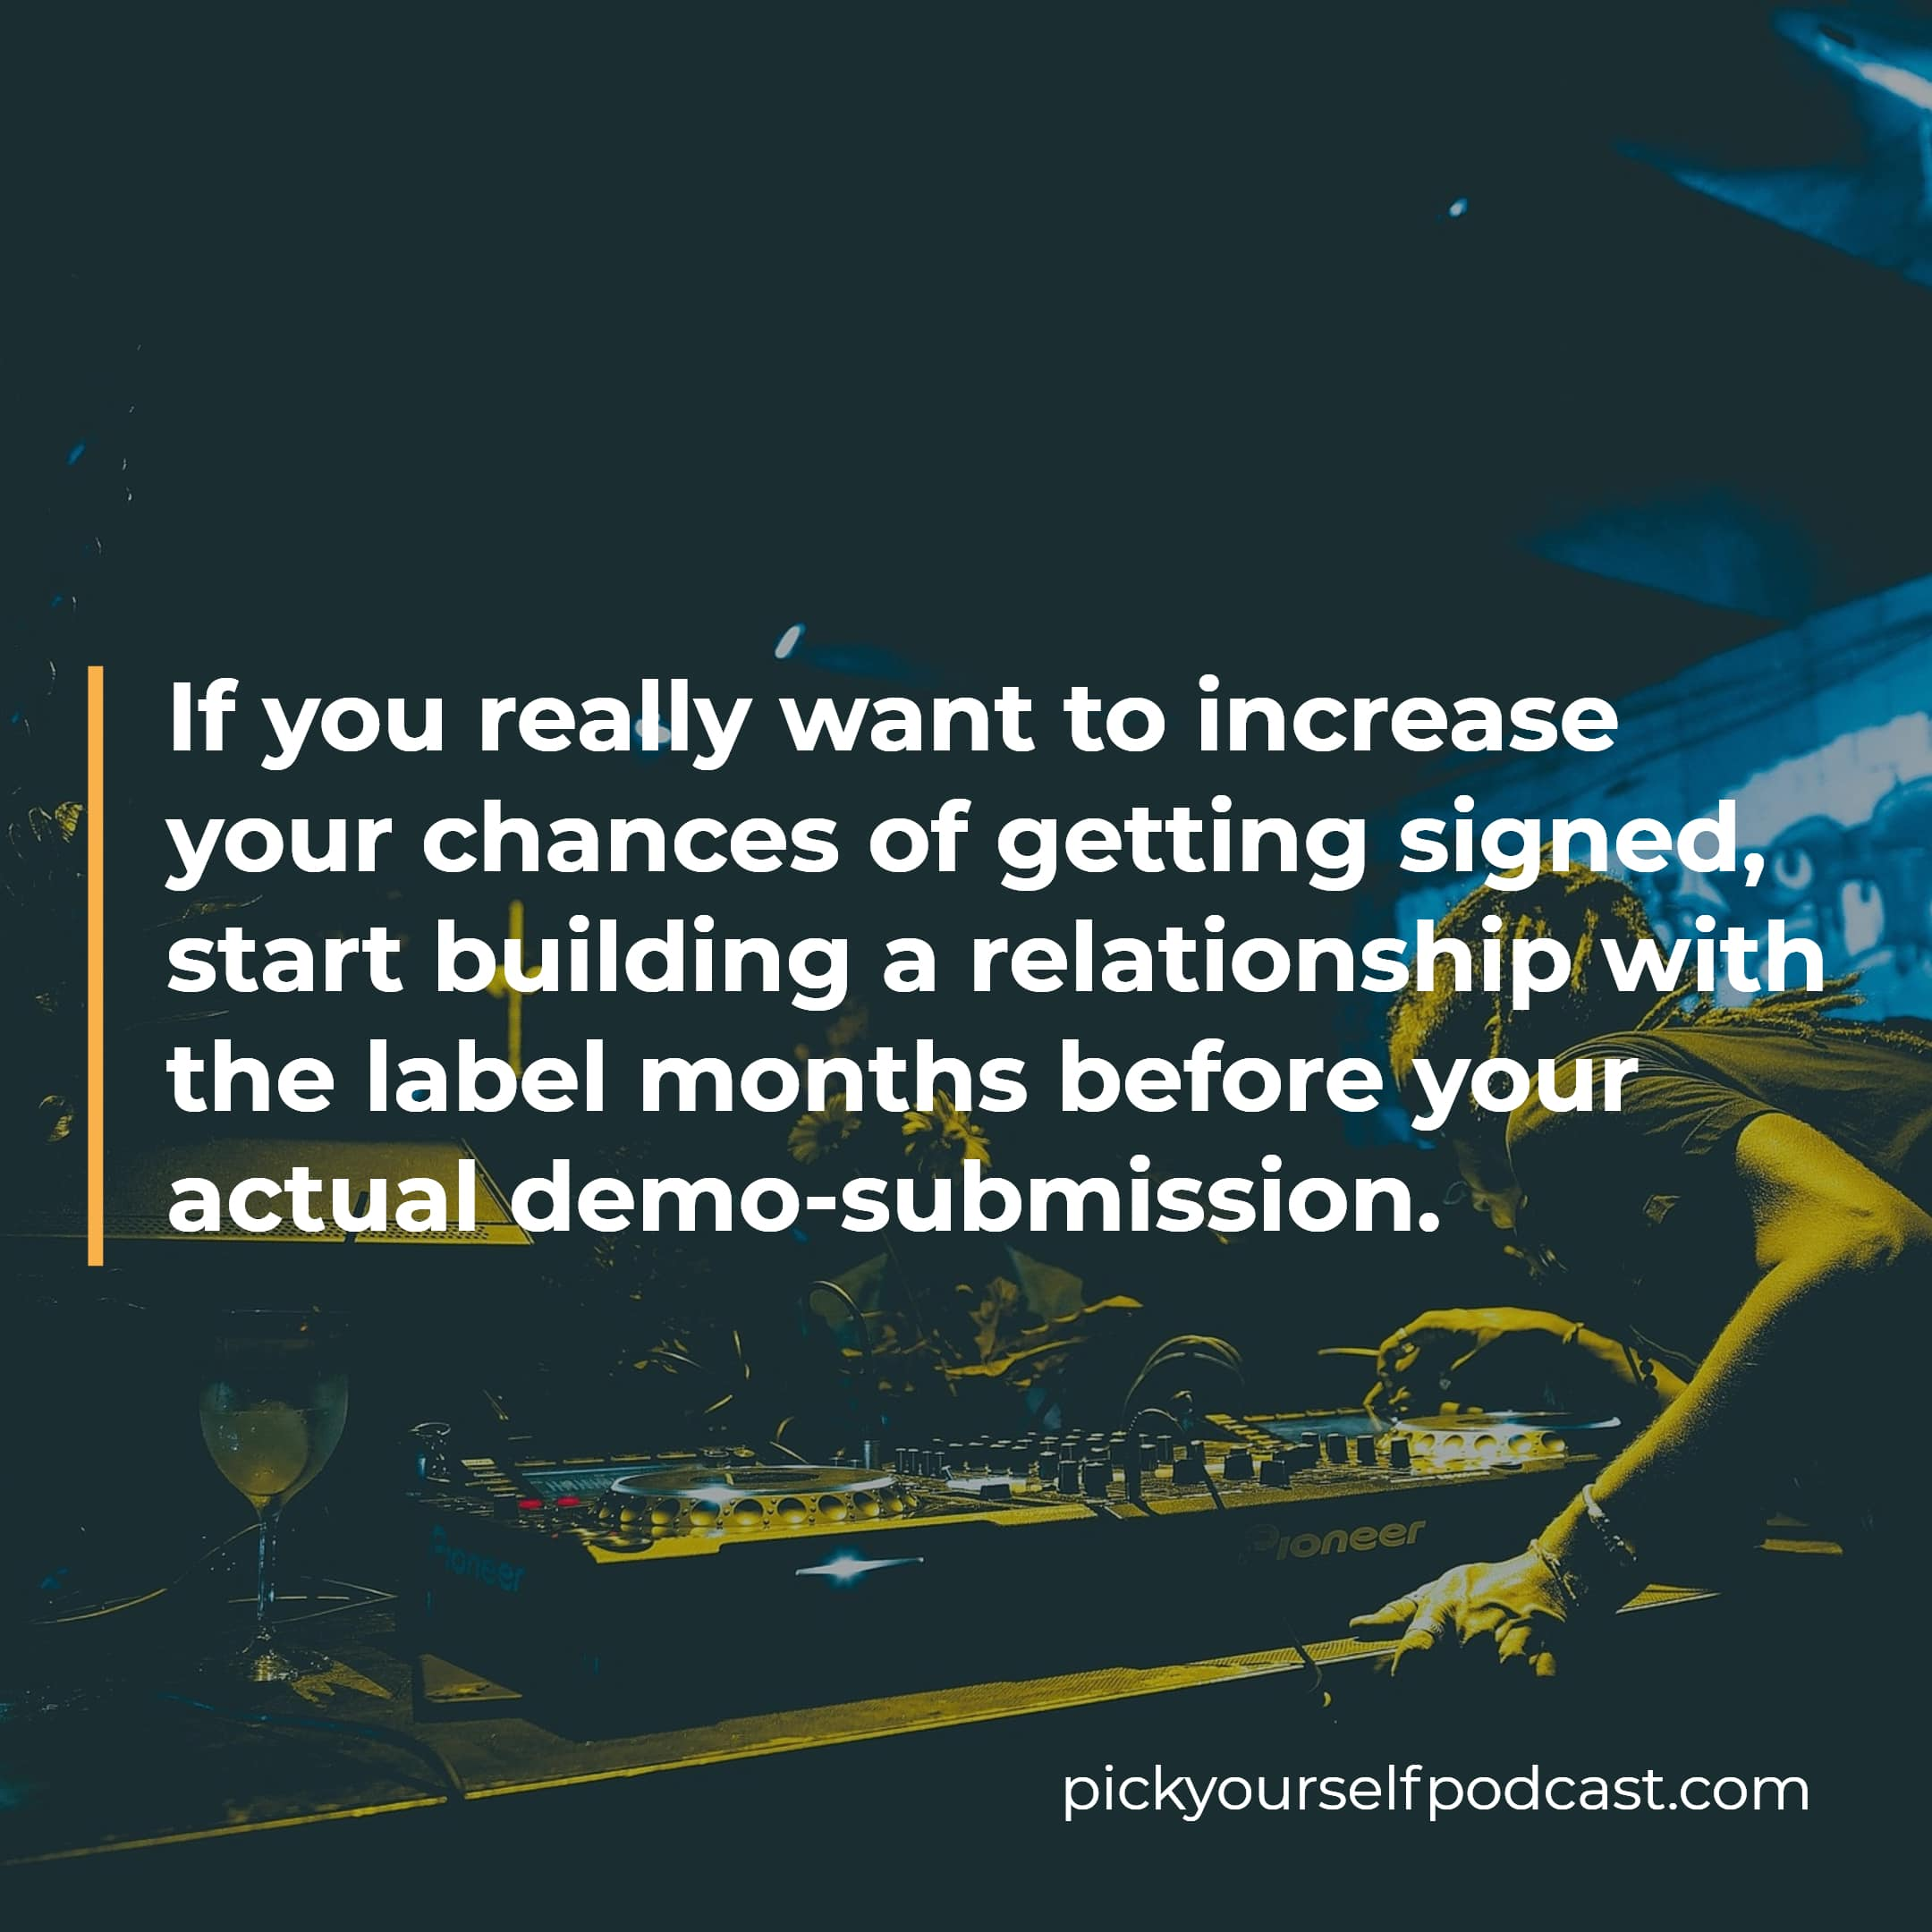 How to submit songs to labels visual 02. It says: If you really want to increase your chances of getting signed, start building a relationship with the label months before your actual demo-submission.